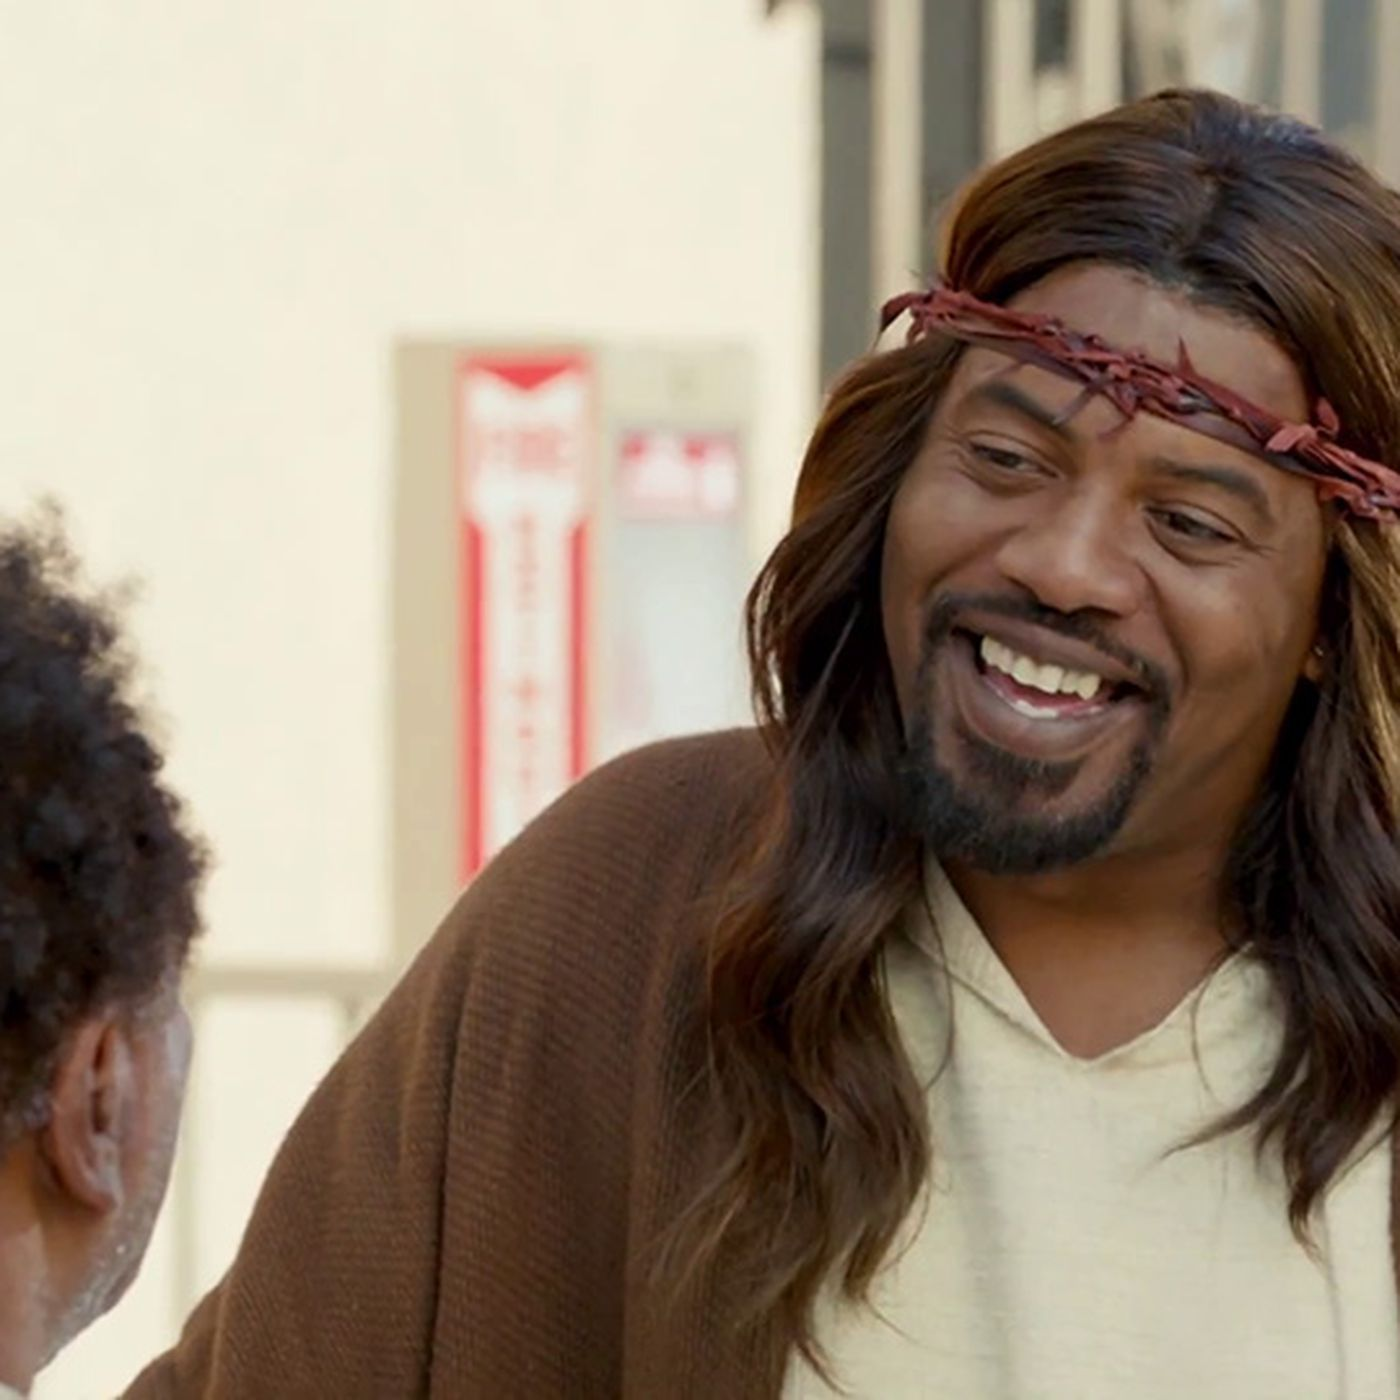 GTA 5's Lamar voice actor stars in live-action Adult Swim comedy